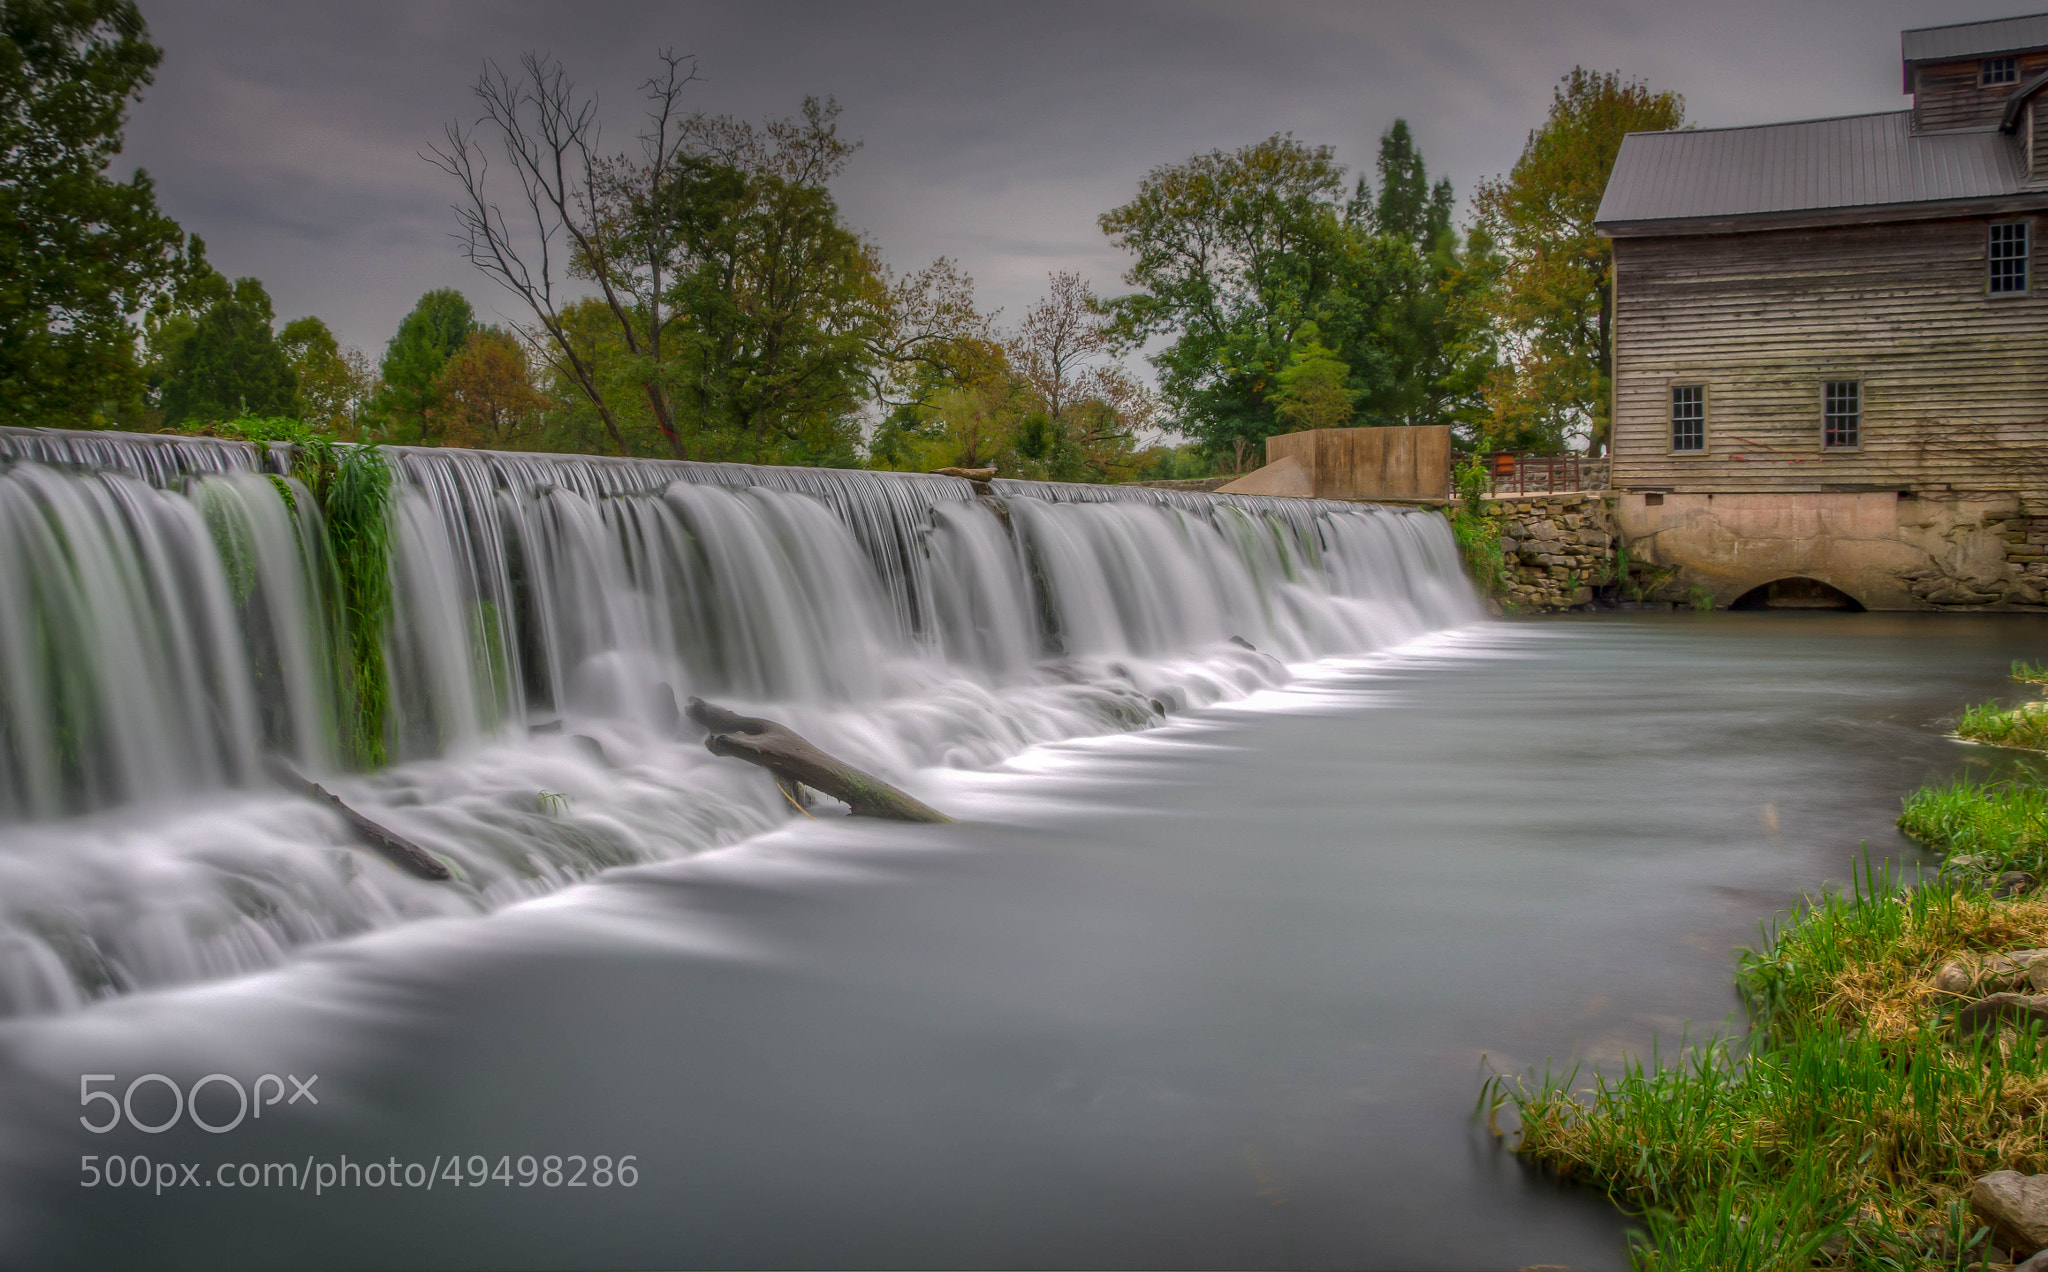 Photograph October at Jolly Mill by Jerry Dean on 500px